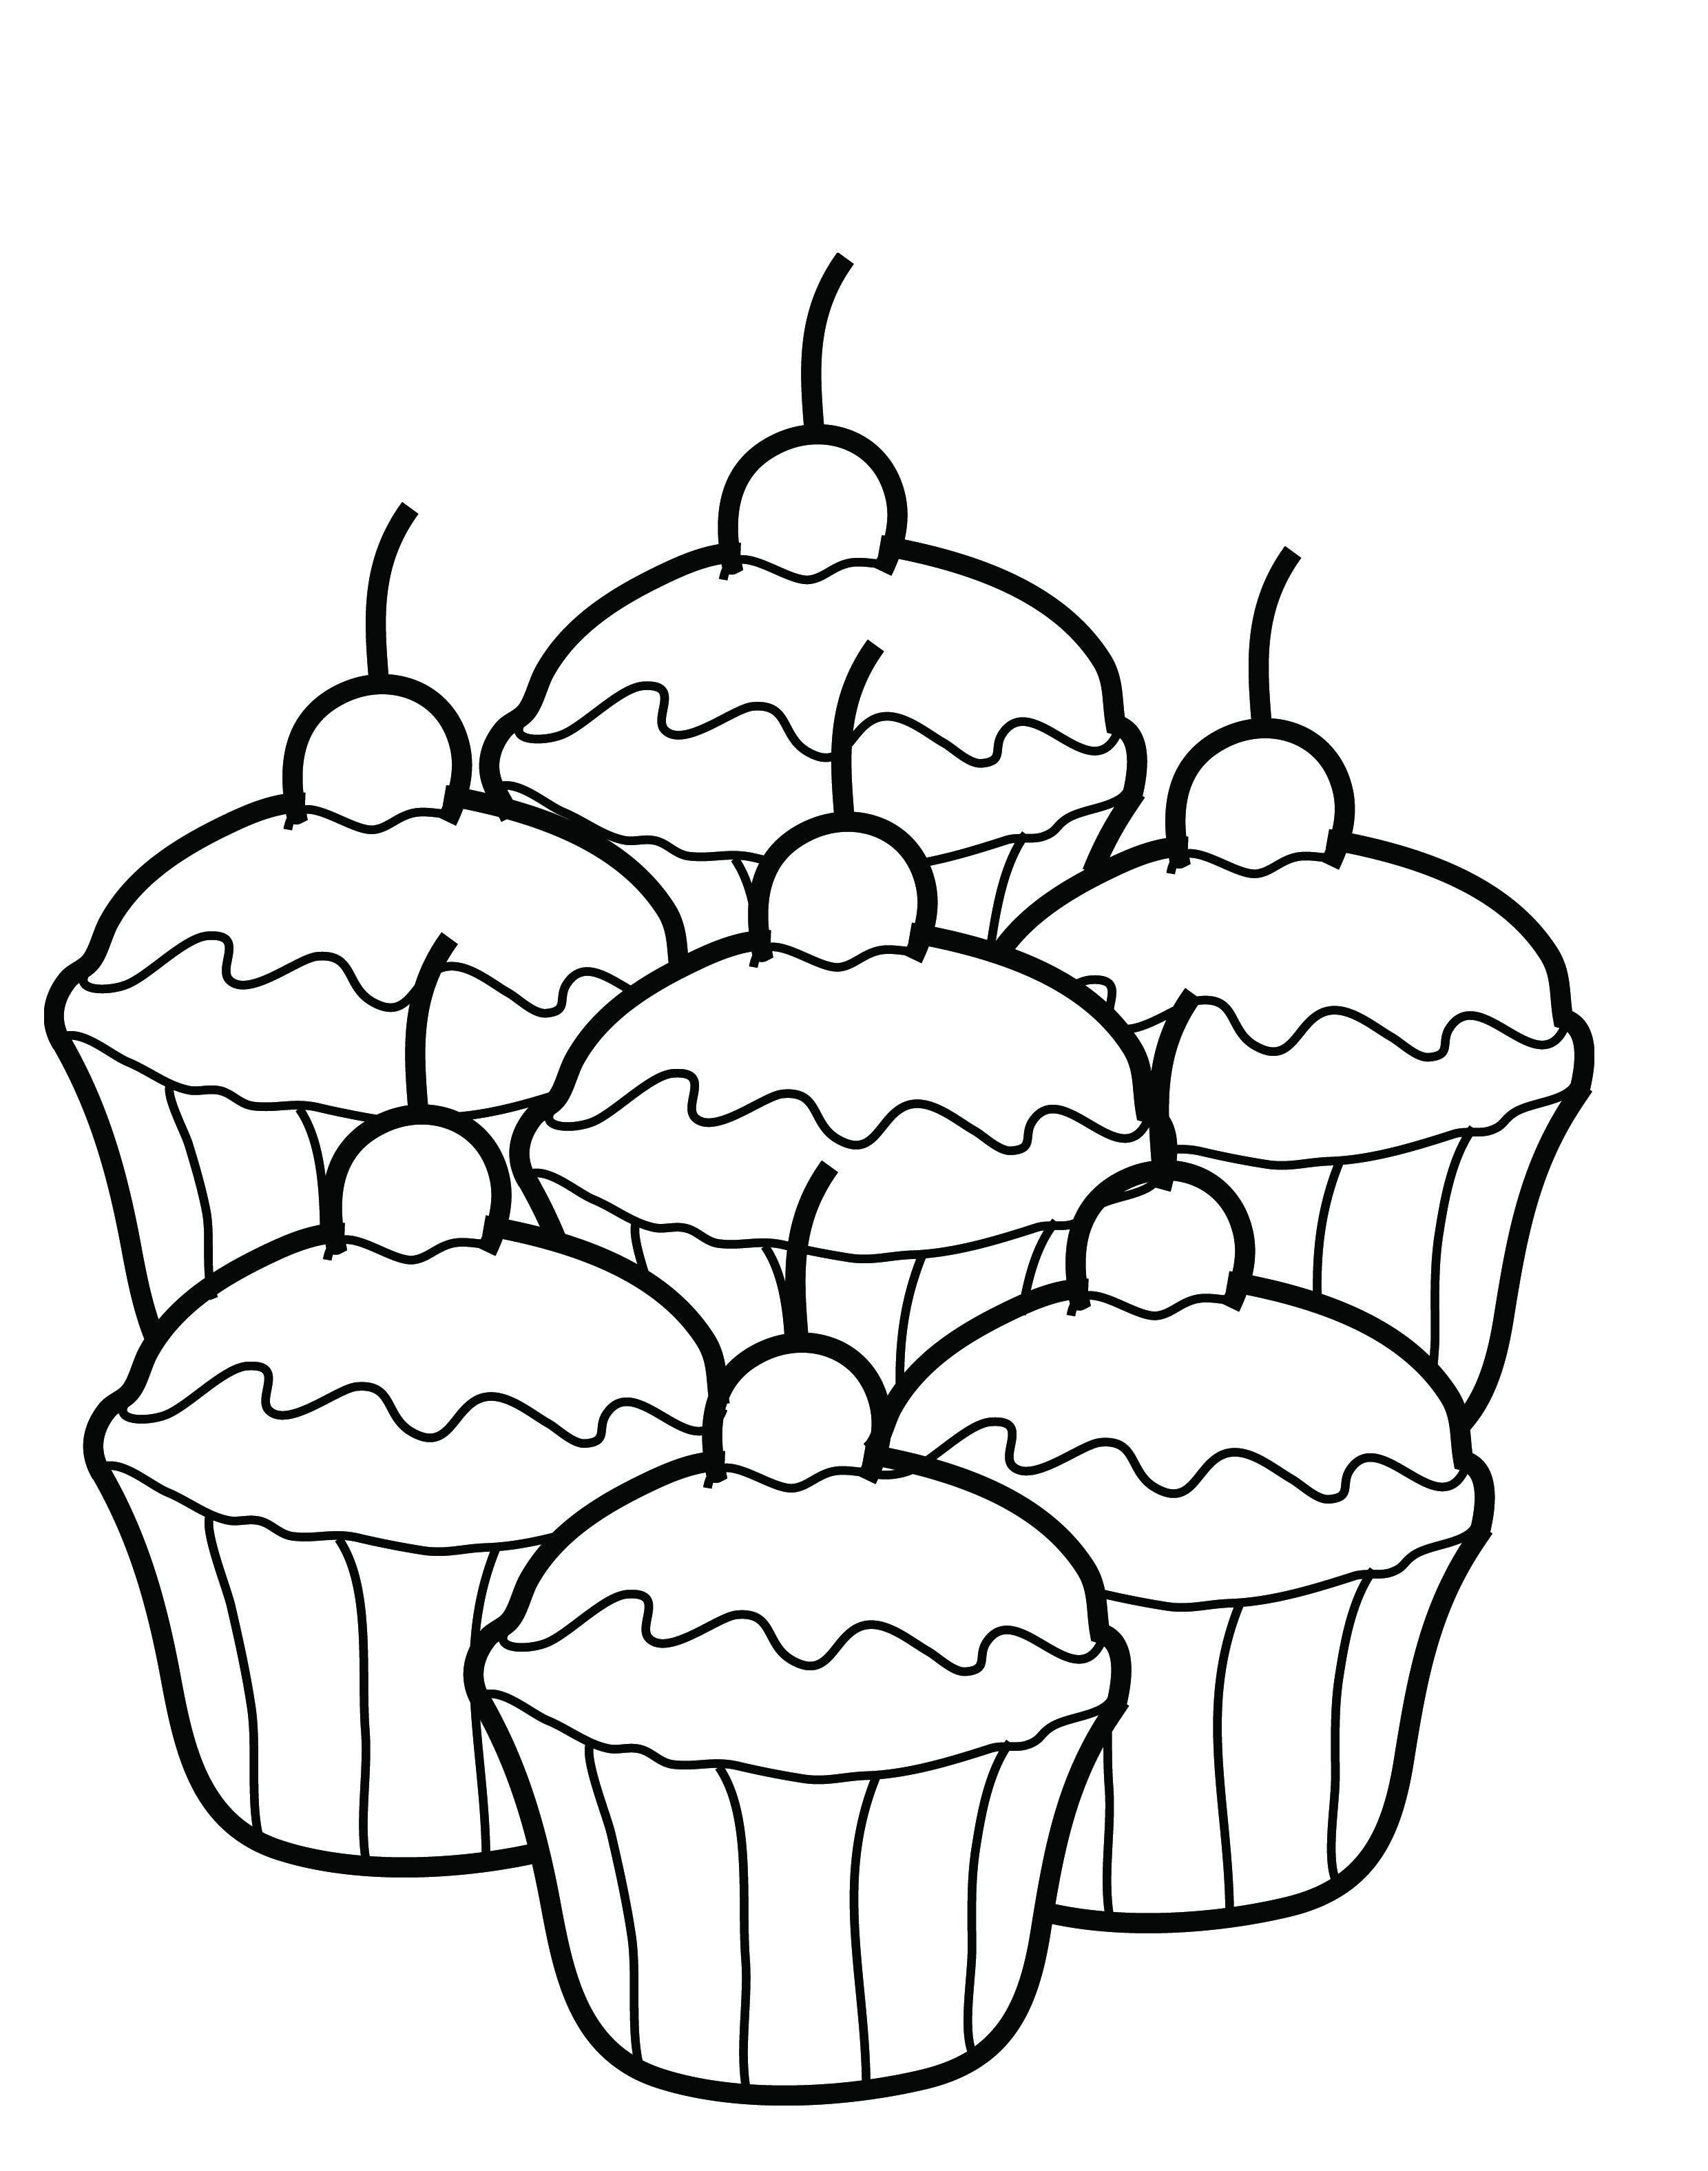 Spring coloring pages and crafts - Coloring Pages